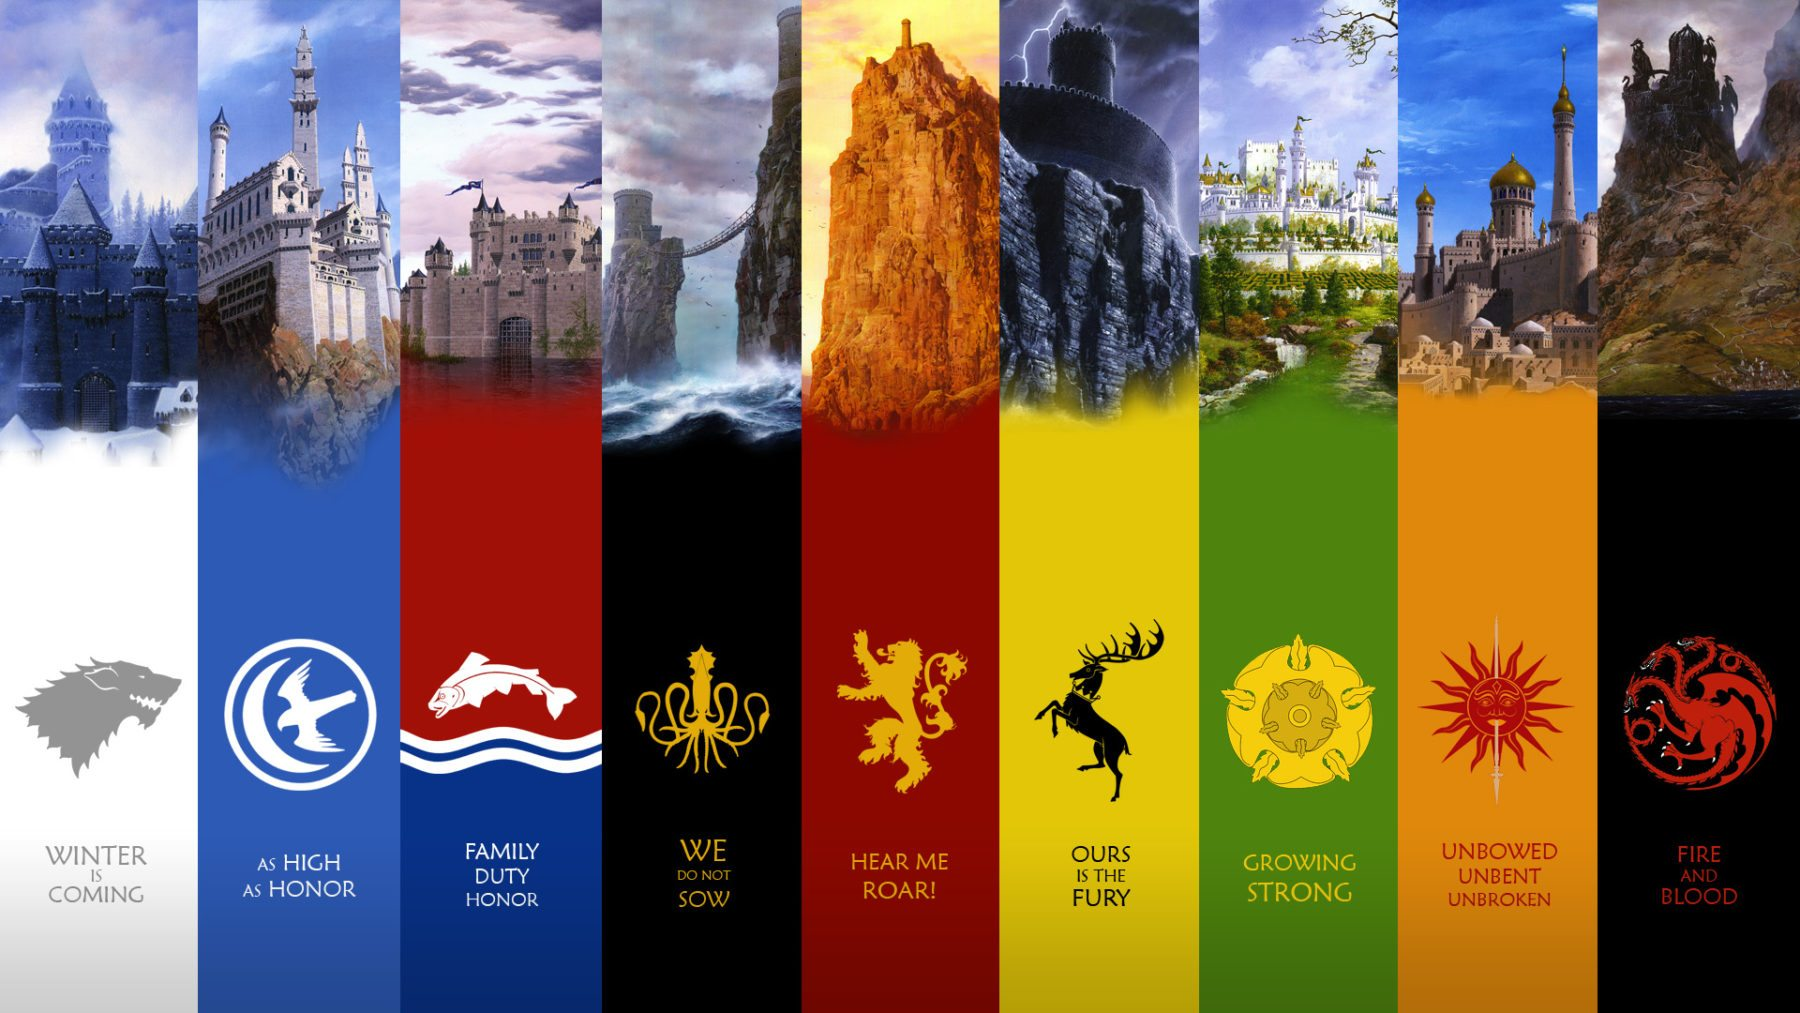 Winter is coming: Why reading A Song of Ice and Fire is as rewarding